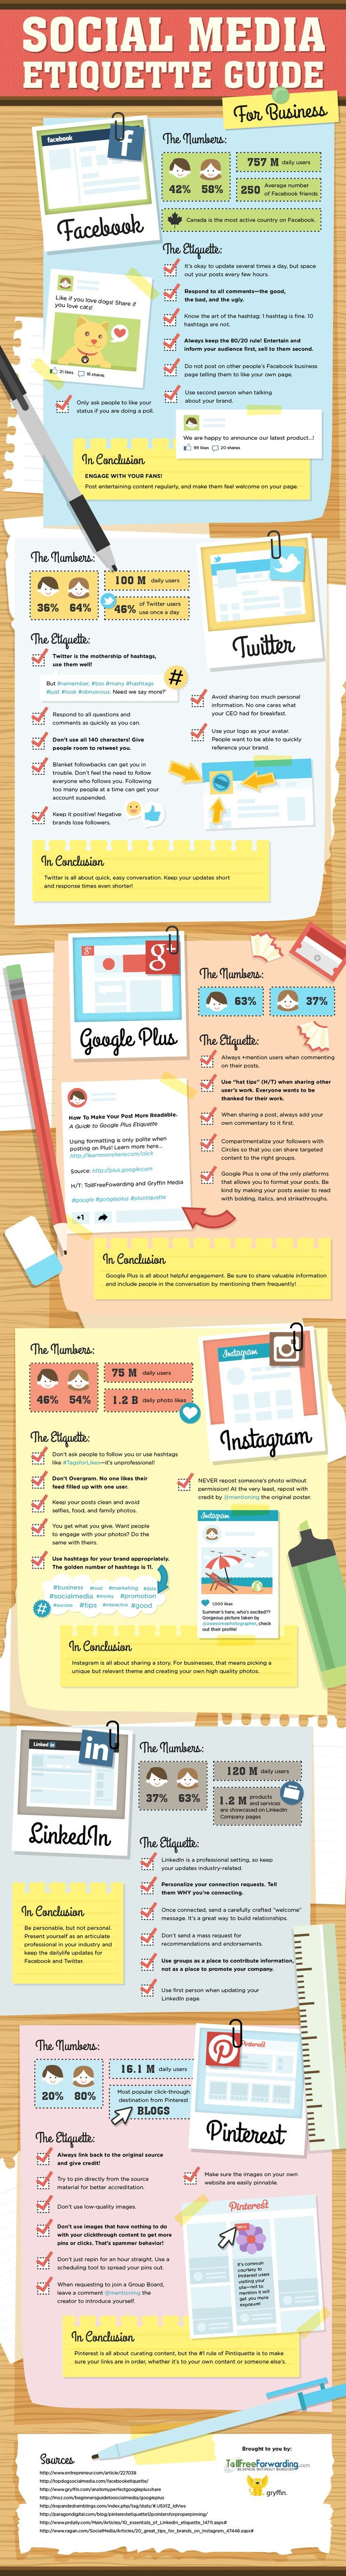 Social Media etiquette guide for Business